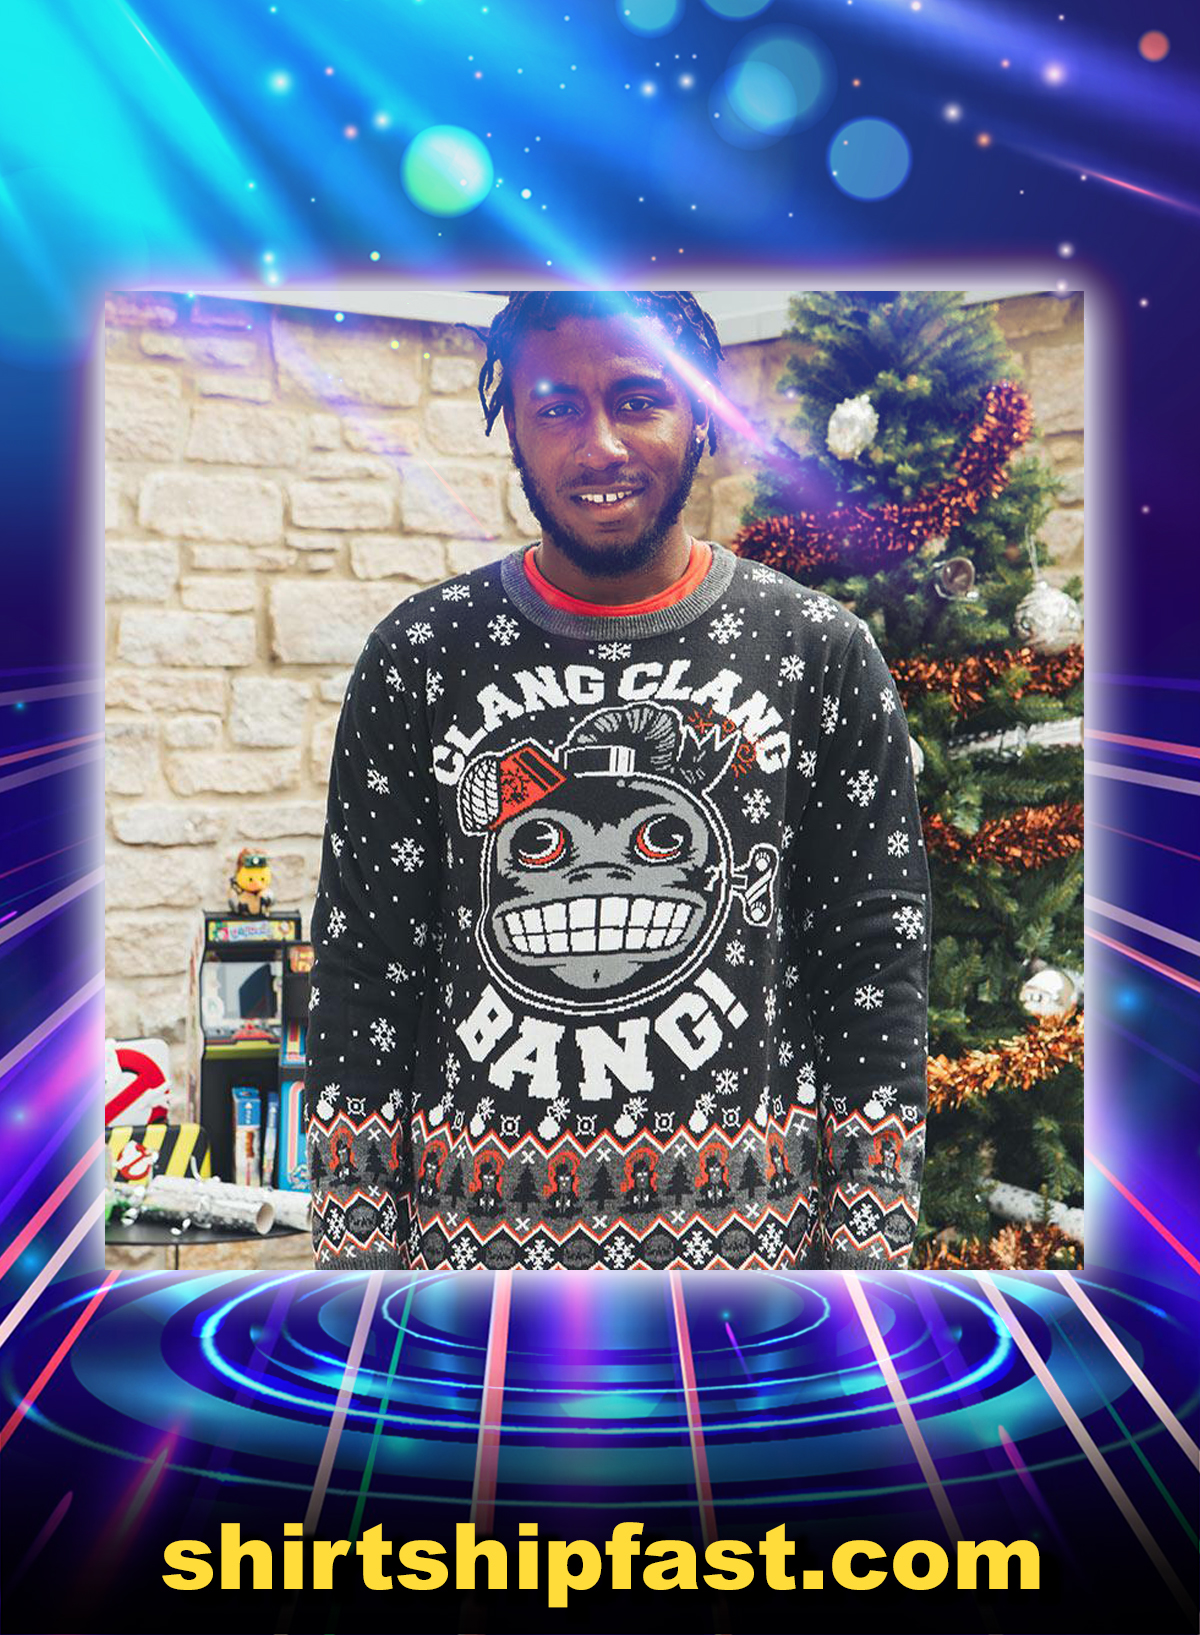 Call of duty monkey bomb clang clang bang ugly christmas sweater and jumper - Picture 1